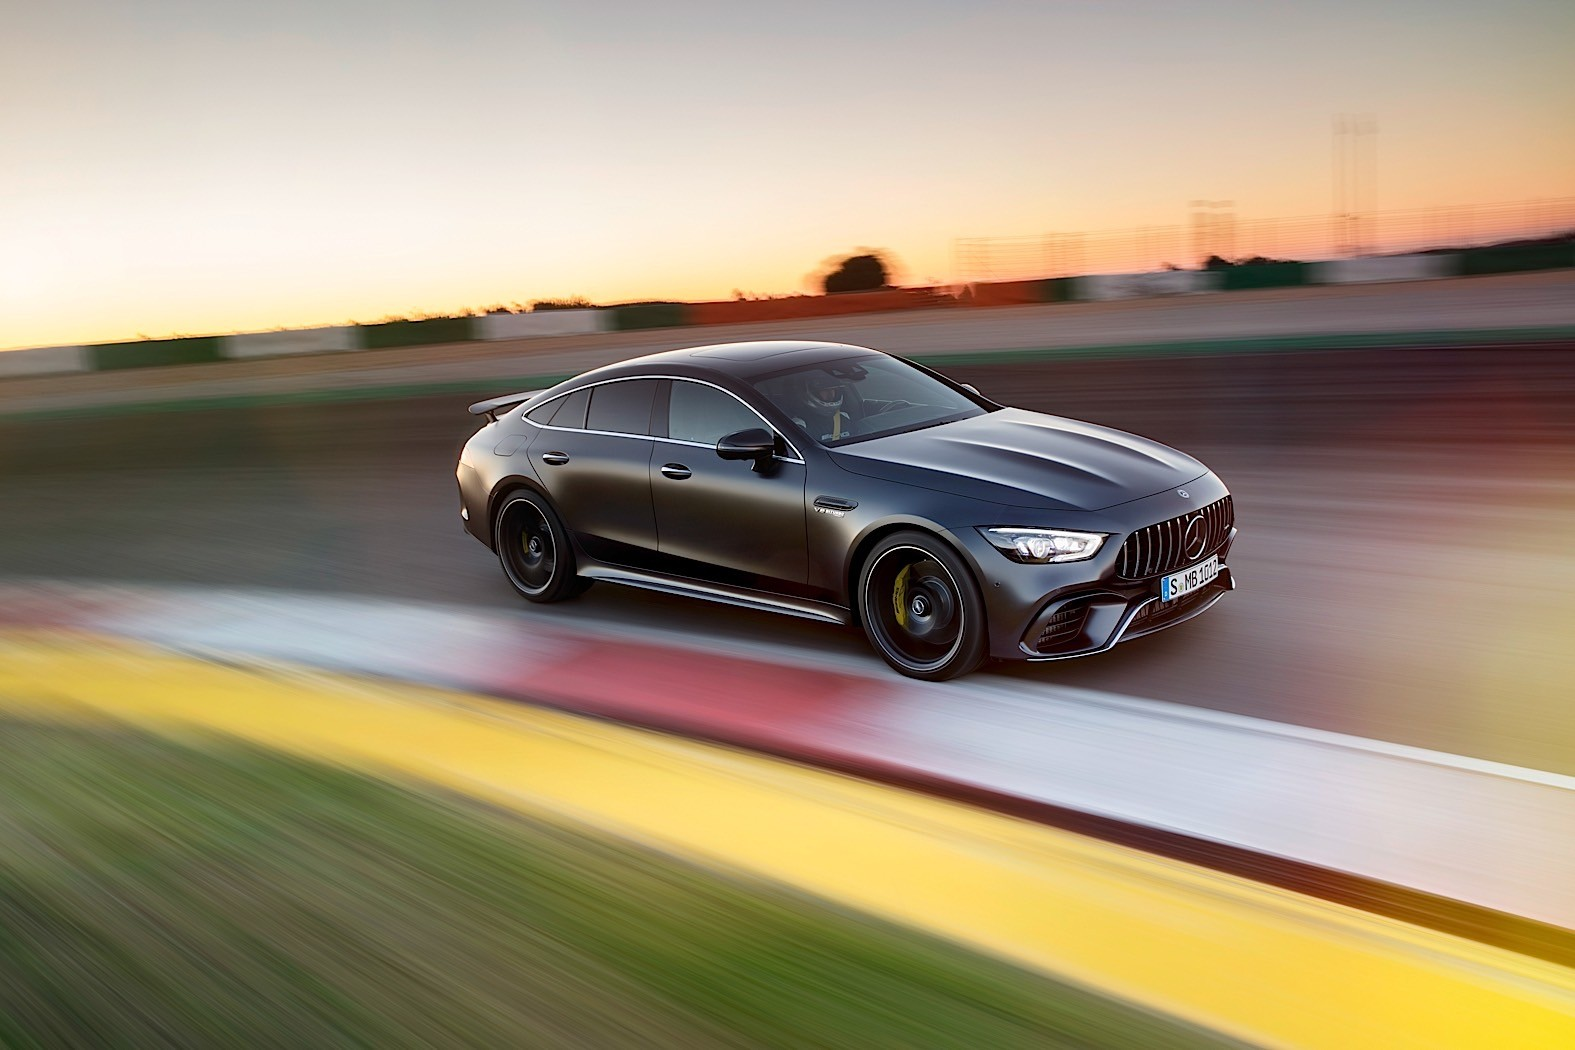 Amg Gt 2019 Mercedes Amg Gt 4 Door Coupe Goes Live In Geneva